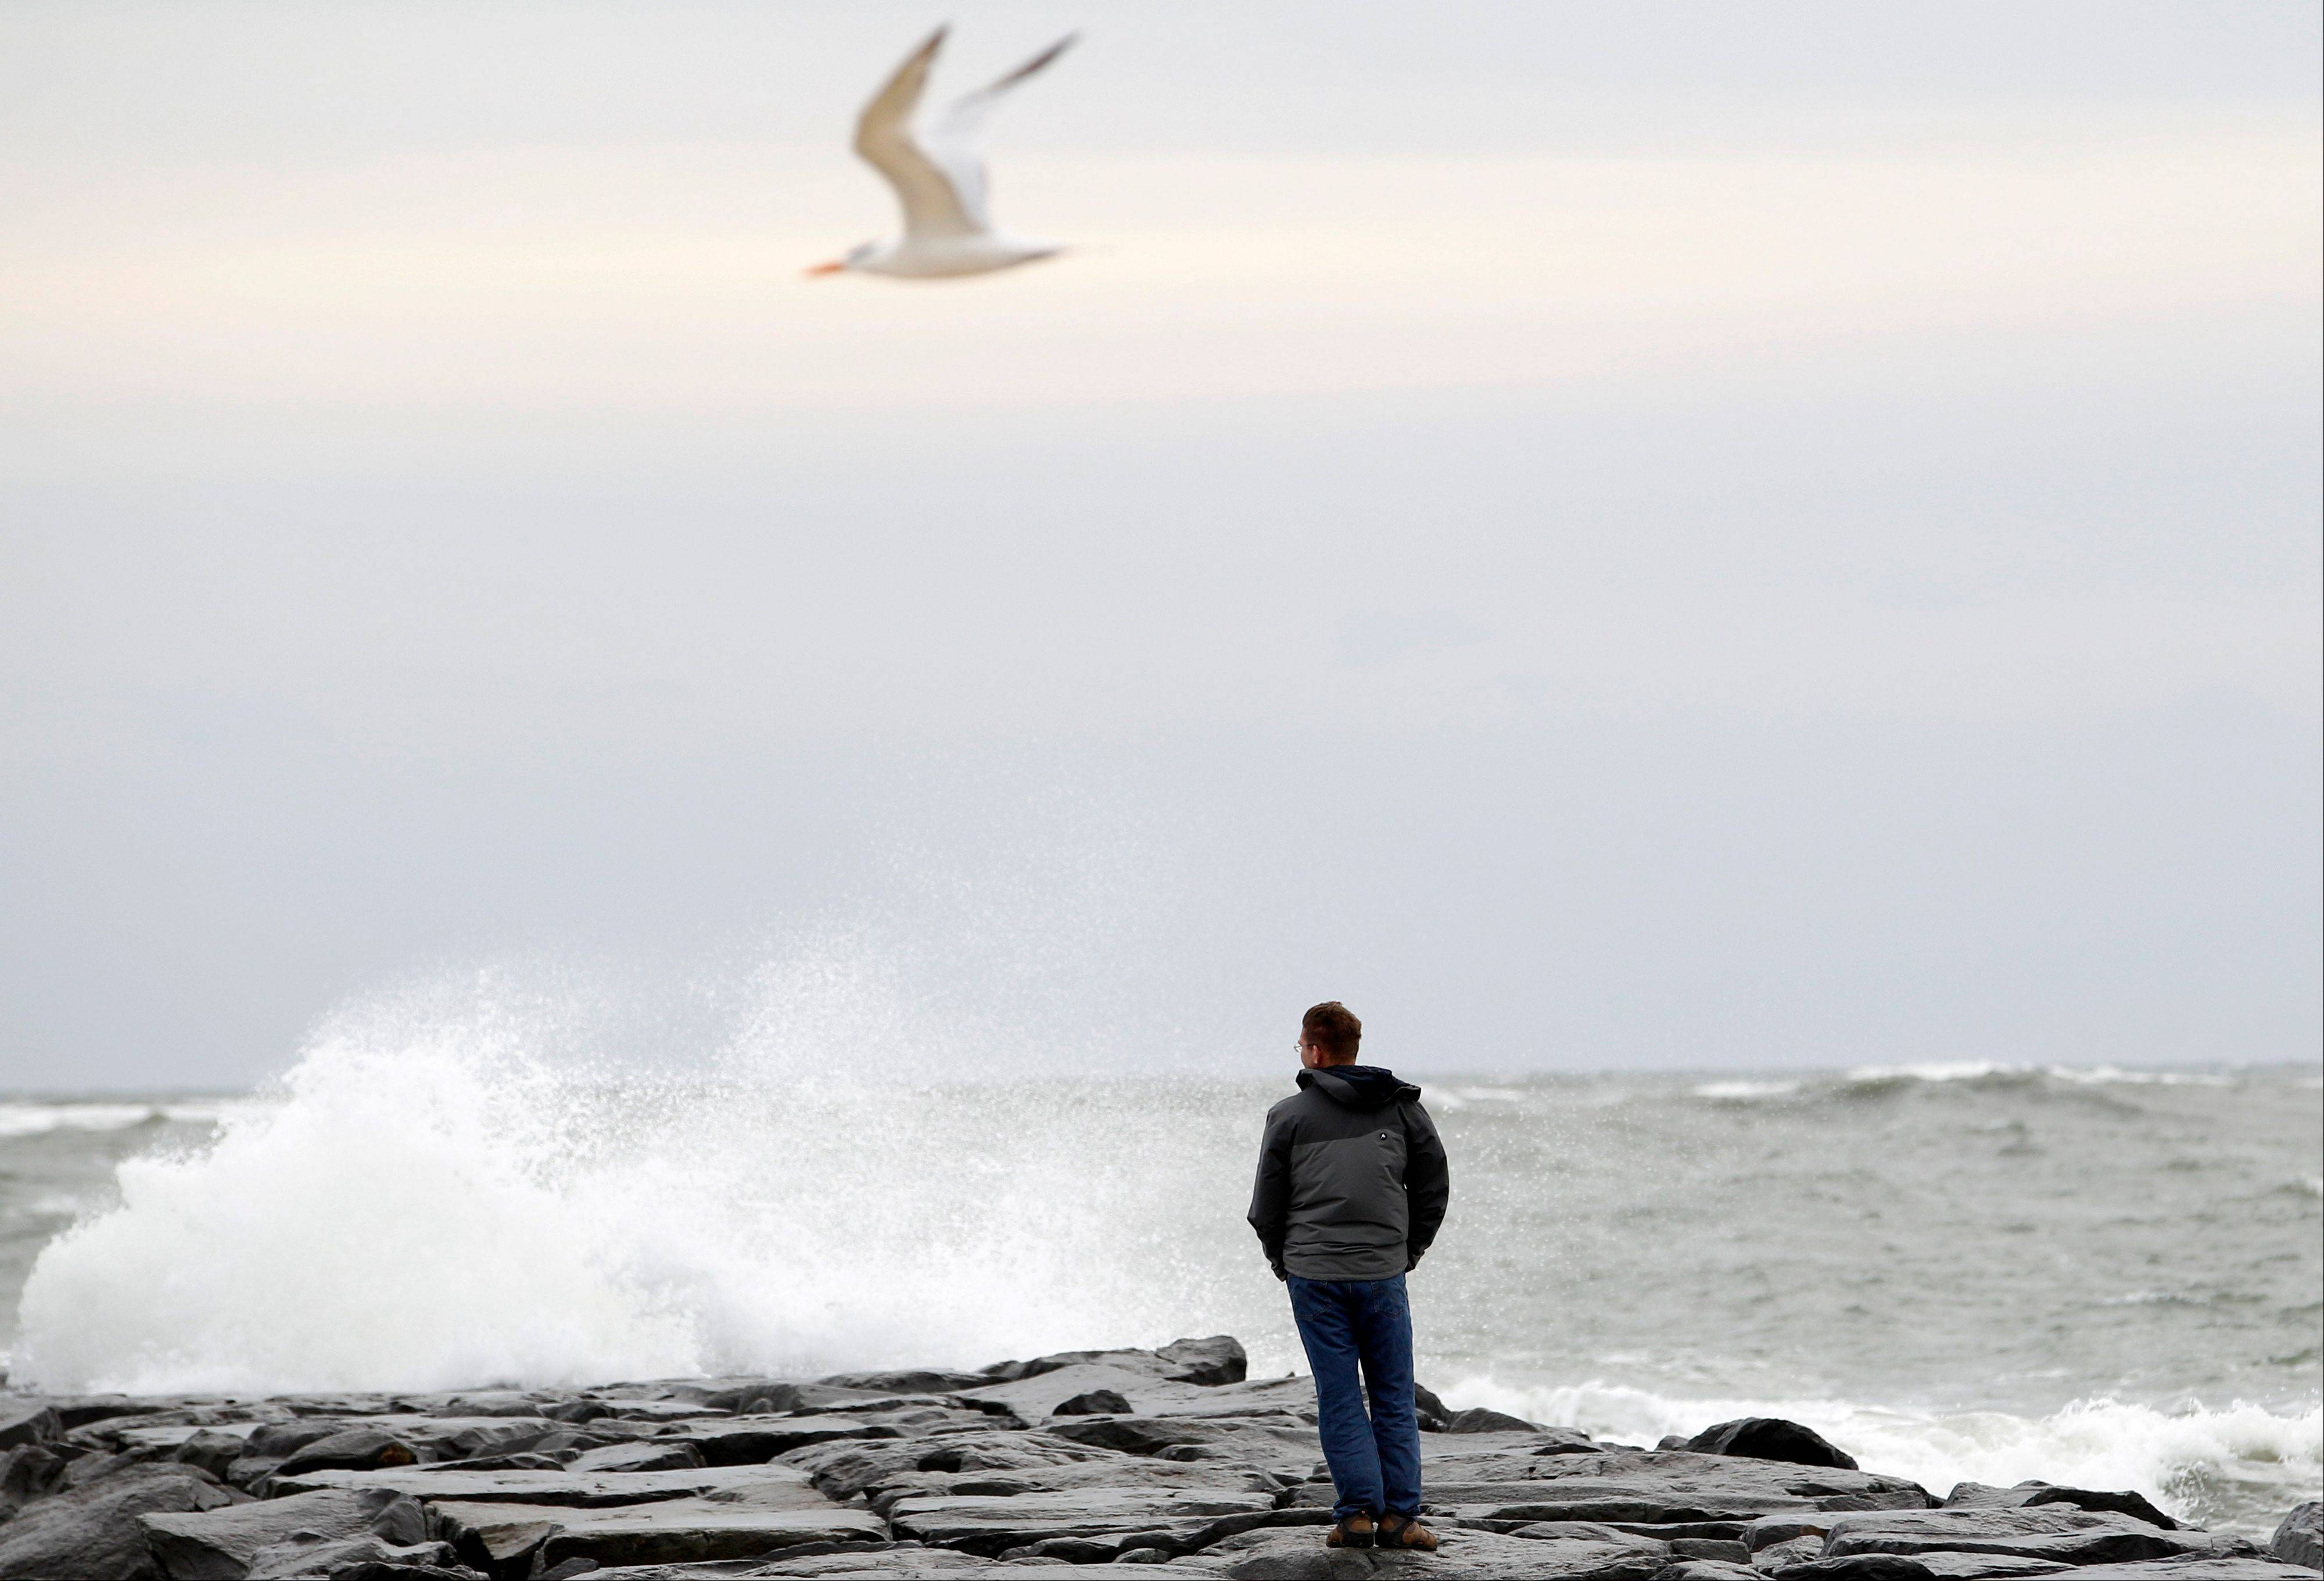 Resident Brian Dougherty looks at the waves from the beach in Ocean City, Md., as Hurricane Sandy approaches the Atlantic Coast, on Saturday, Oct. 27, 2012.